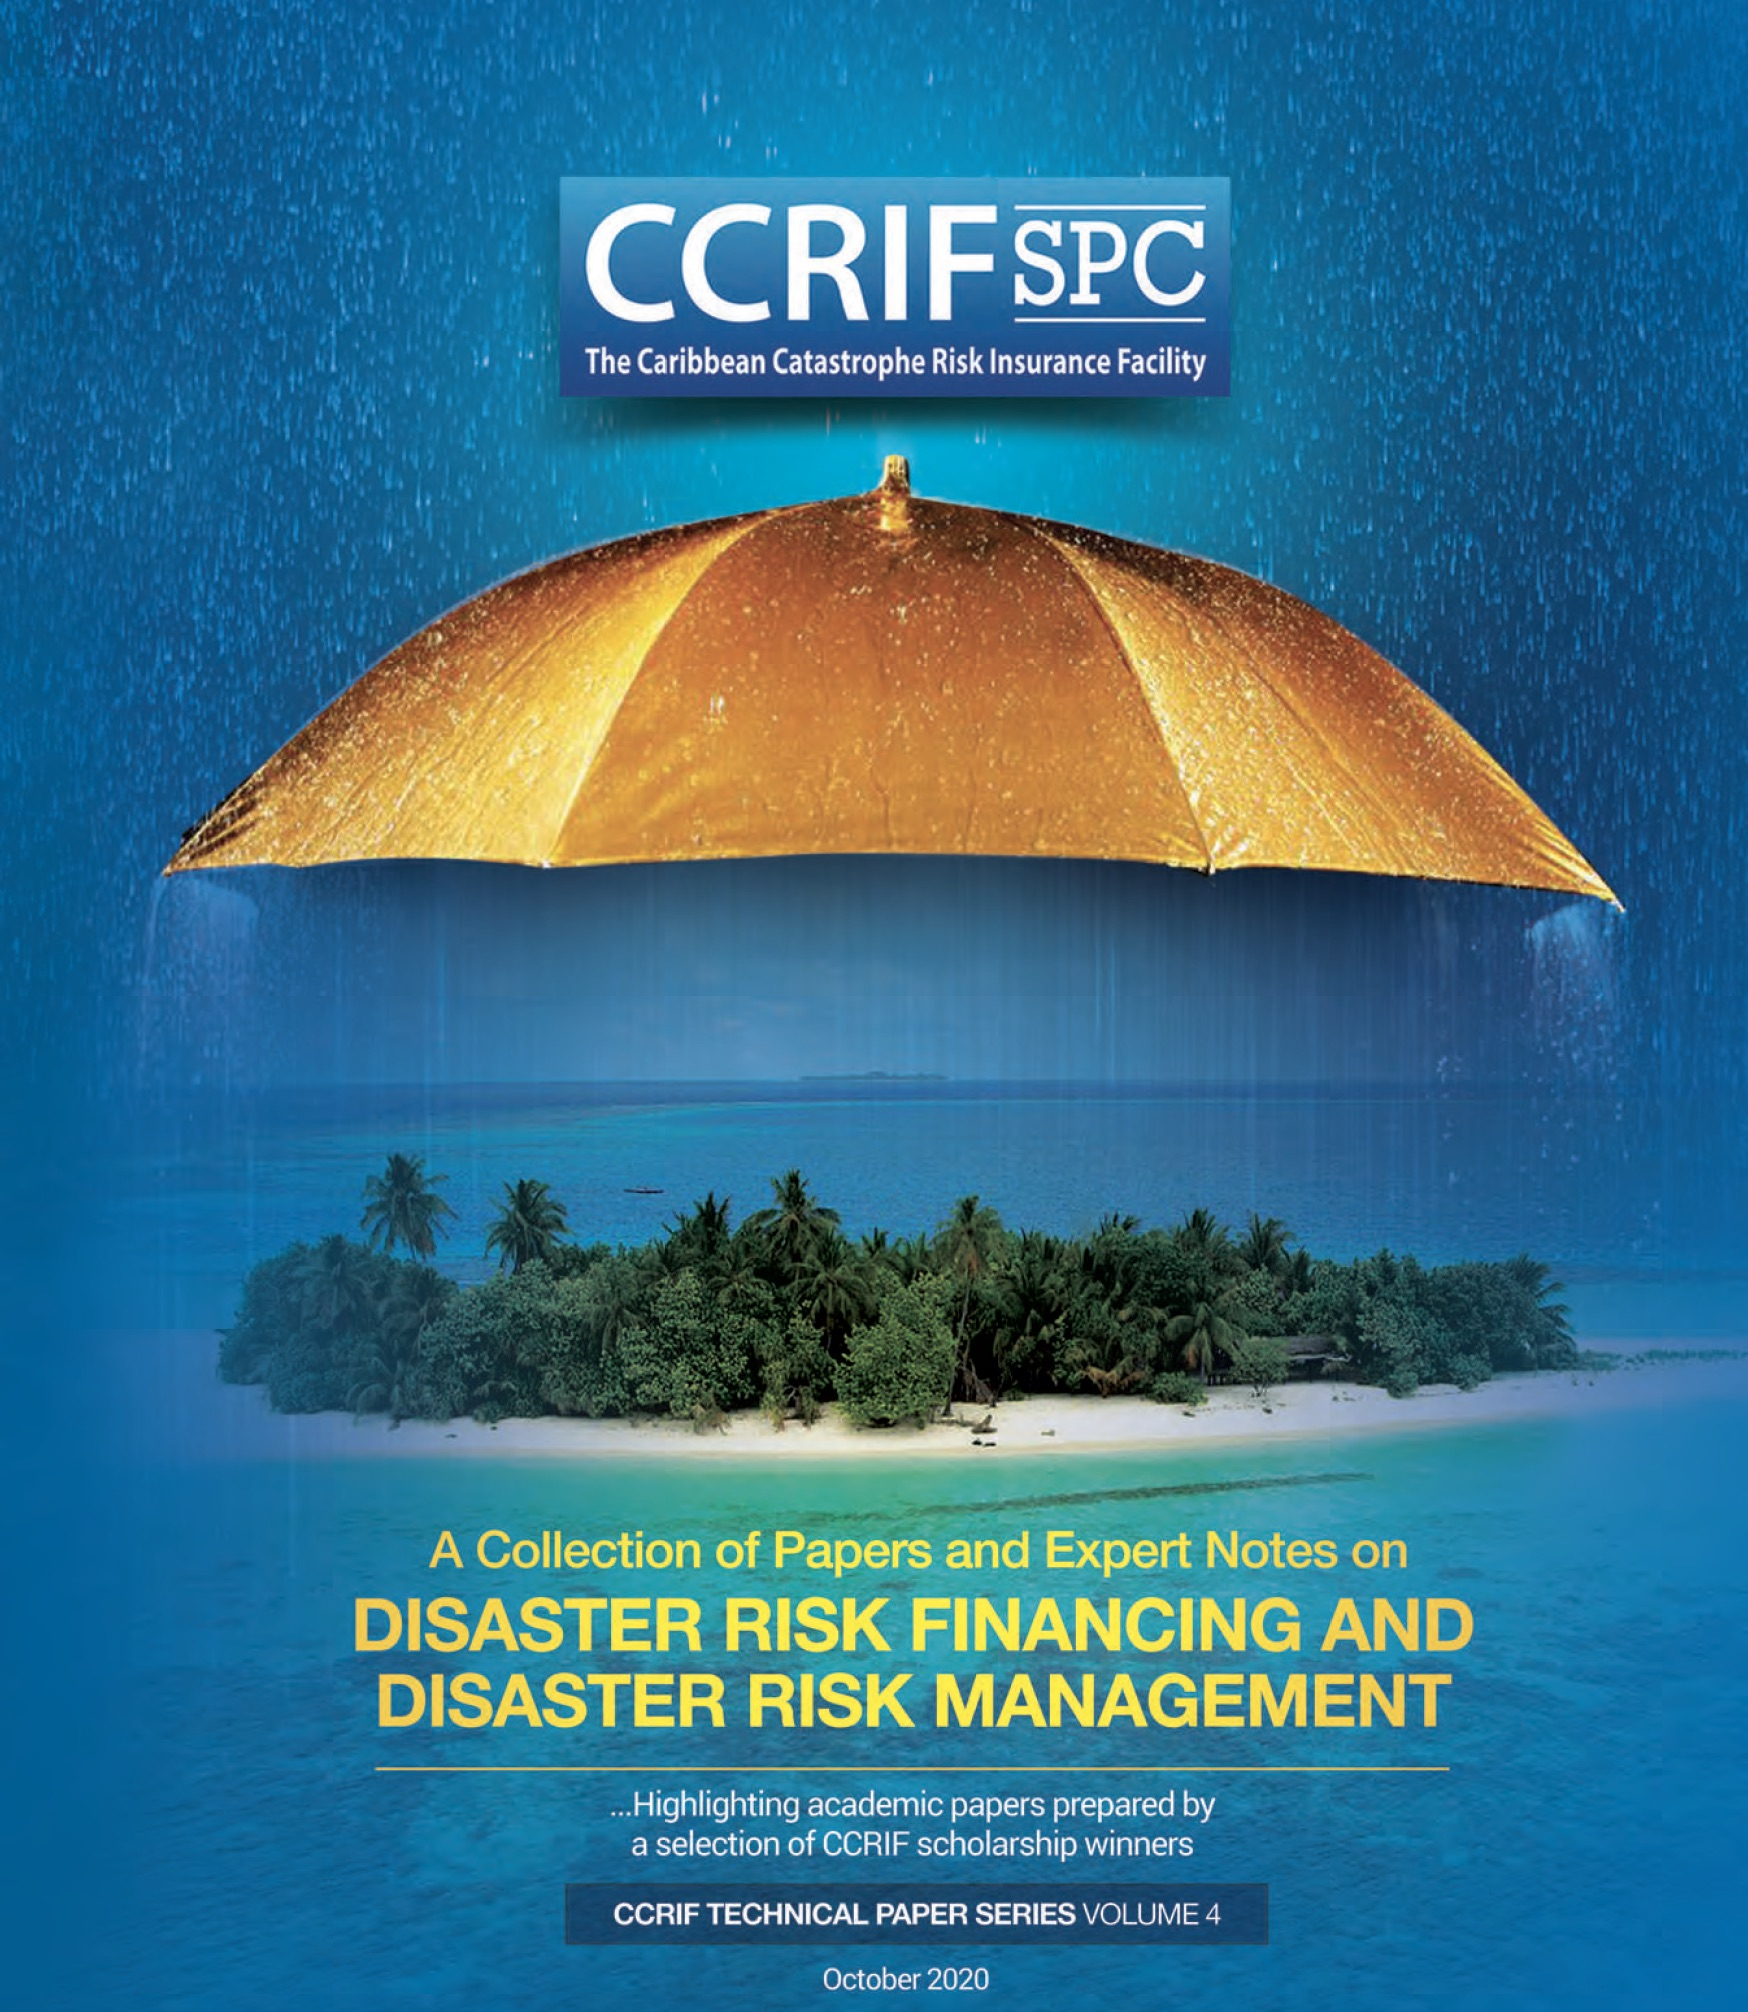 CCRIF SPC Technical Paper Series Volume 4 - A Collection of Papers & Expert Notes